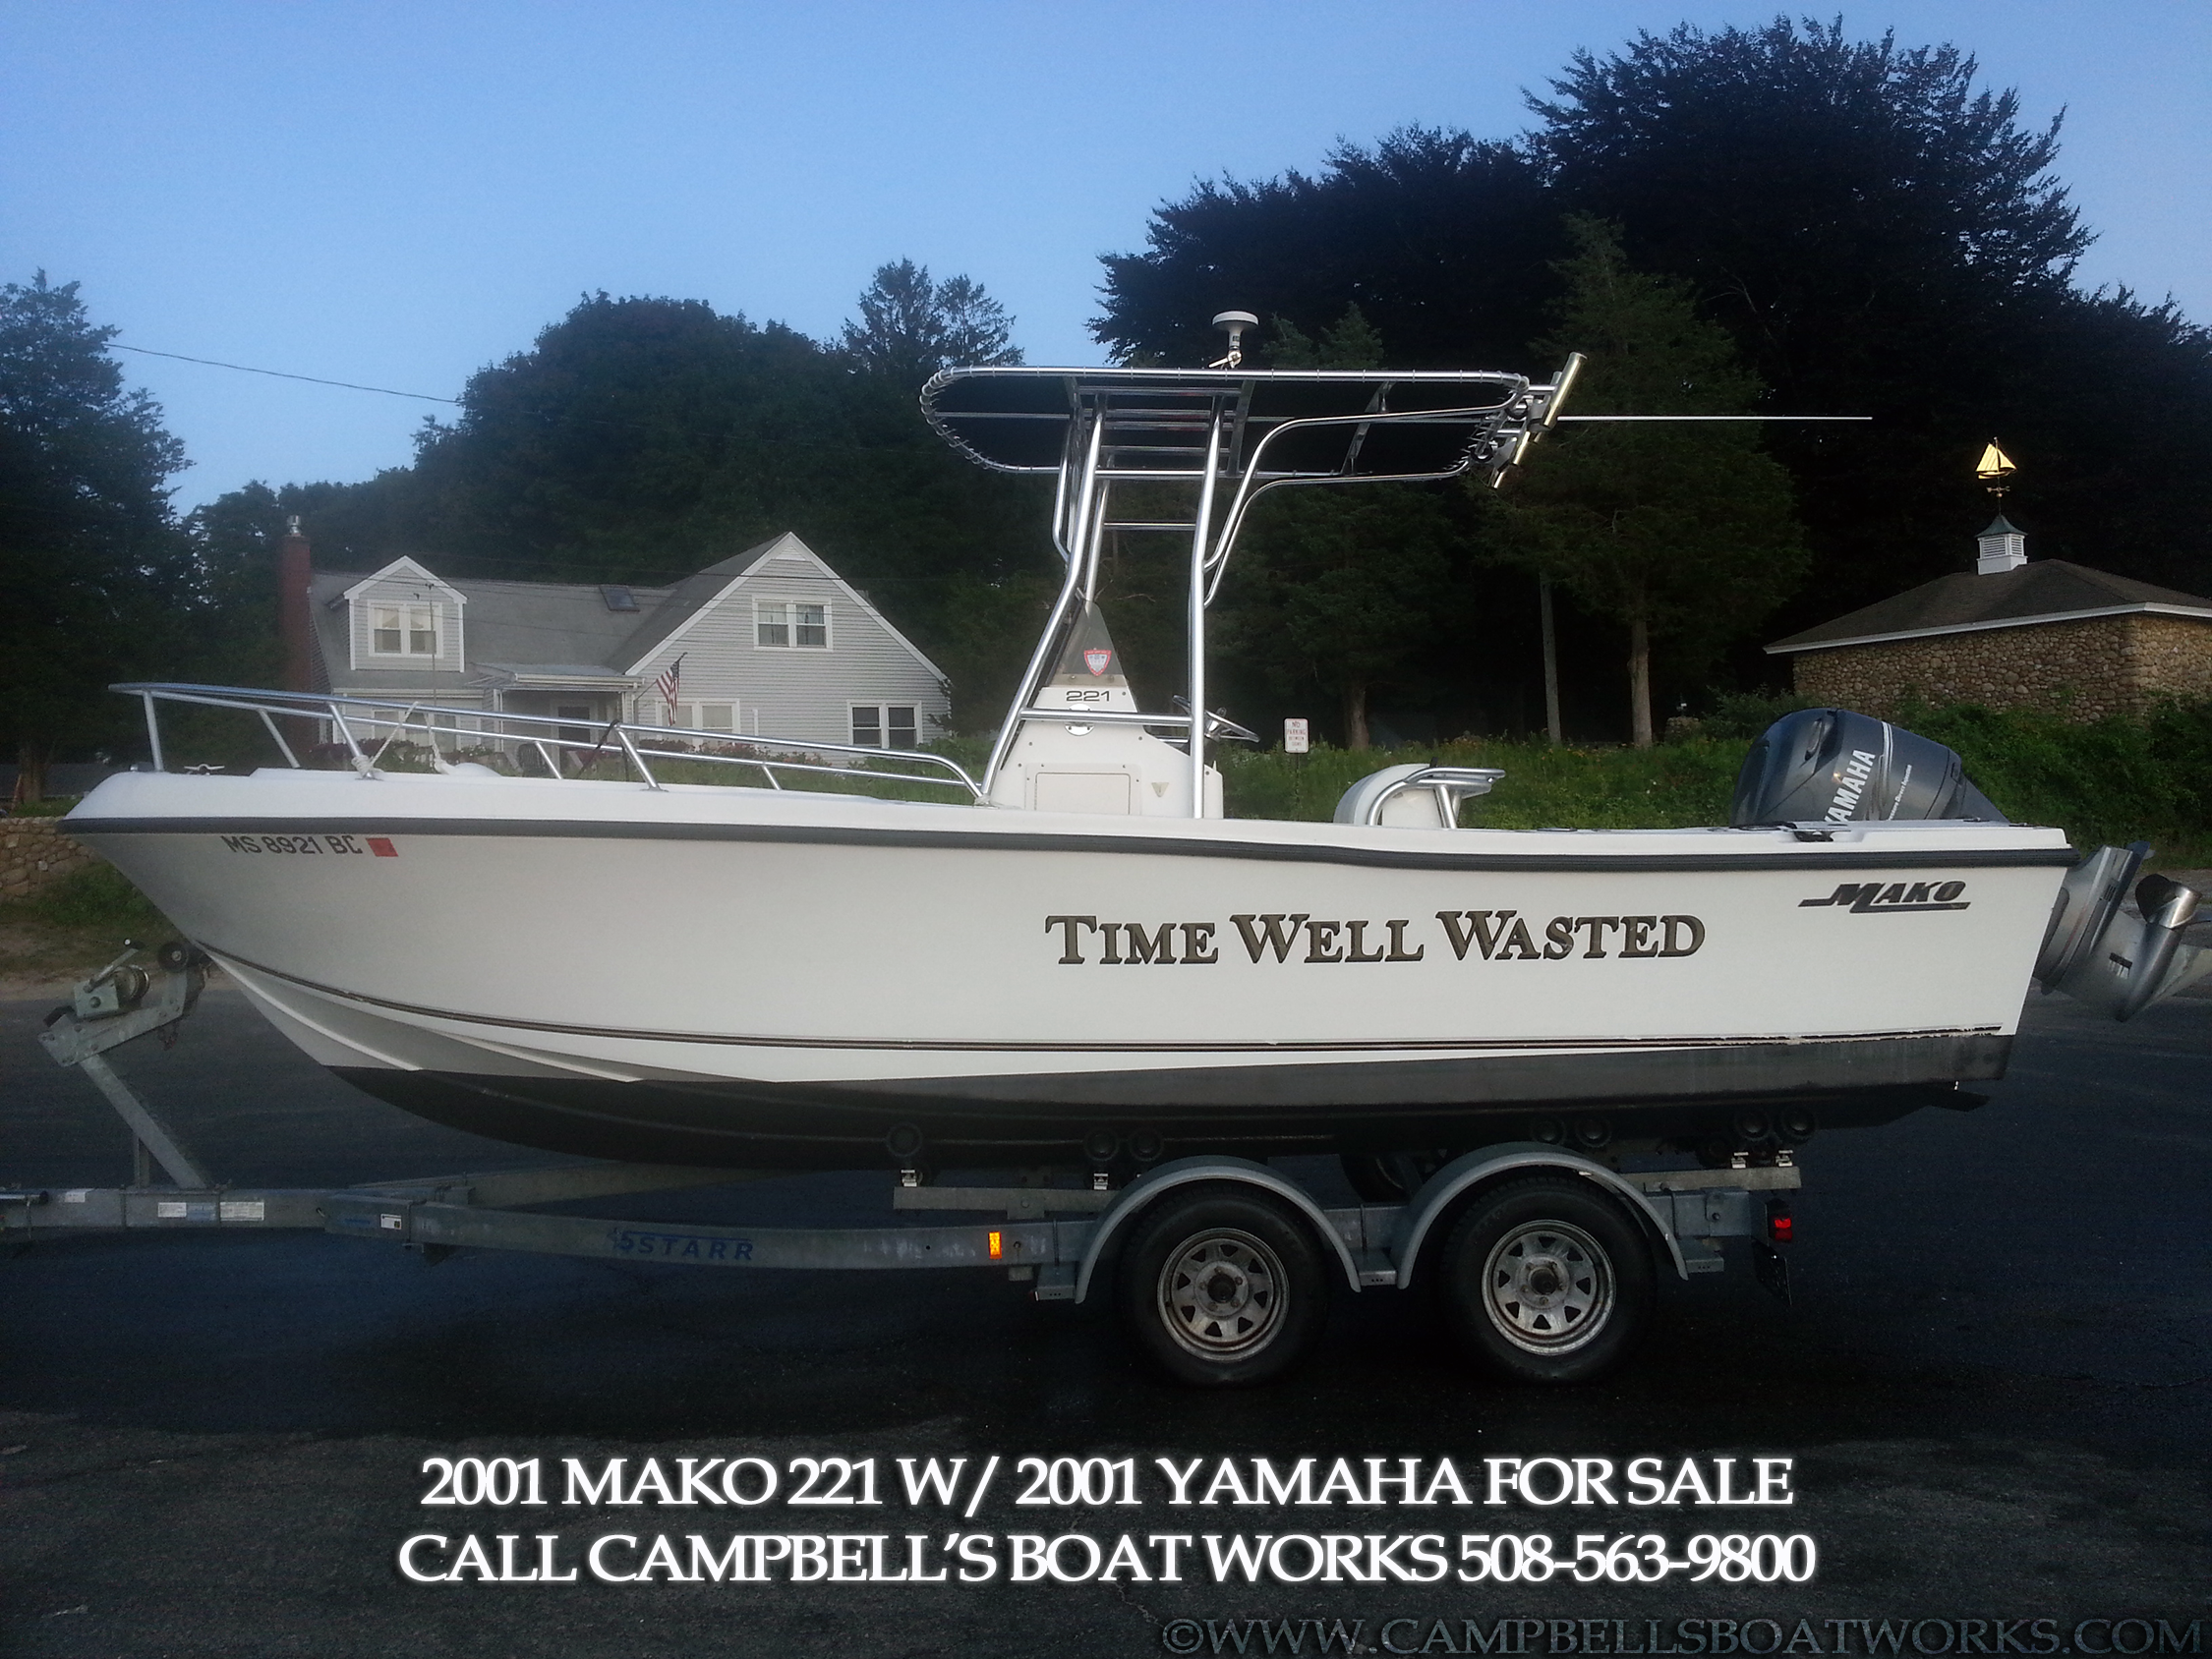 mako-221-center-console-boat-t-top-trailer-for-sale-yamaha-outboard.png